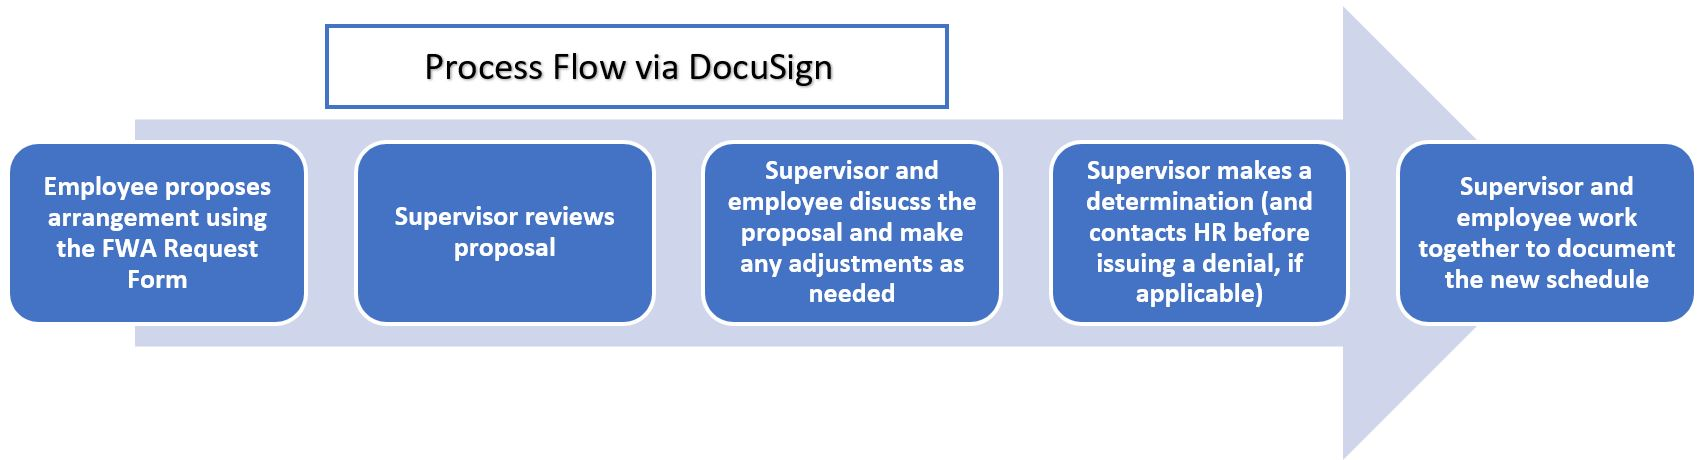 Image of Process Flow via DocuSign